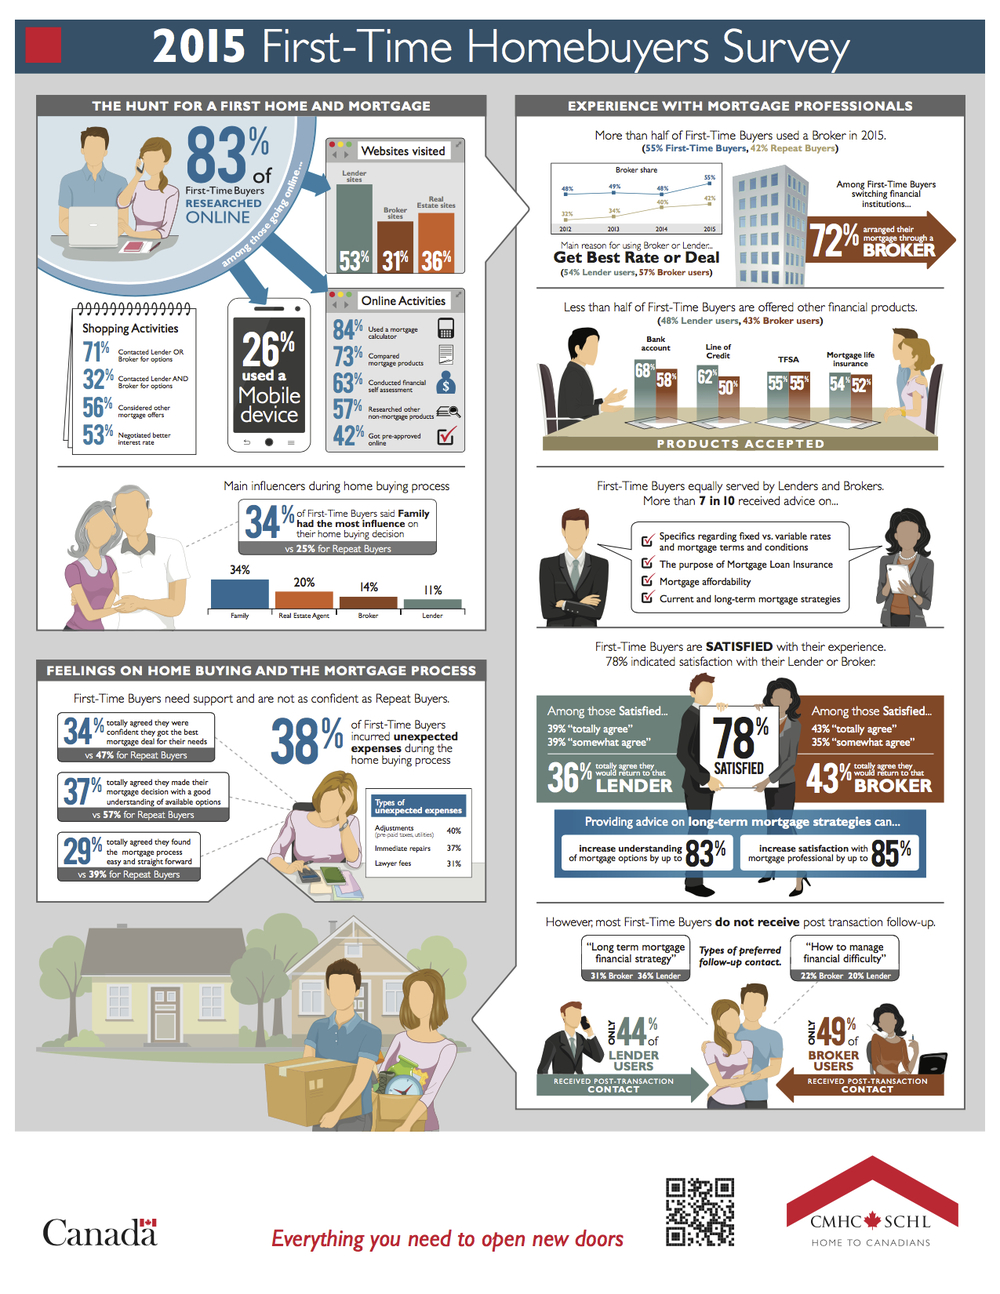 2015 cmhc first time home buyer survey infographic